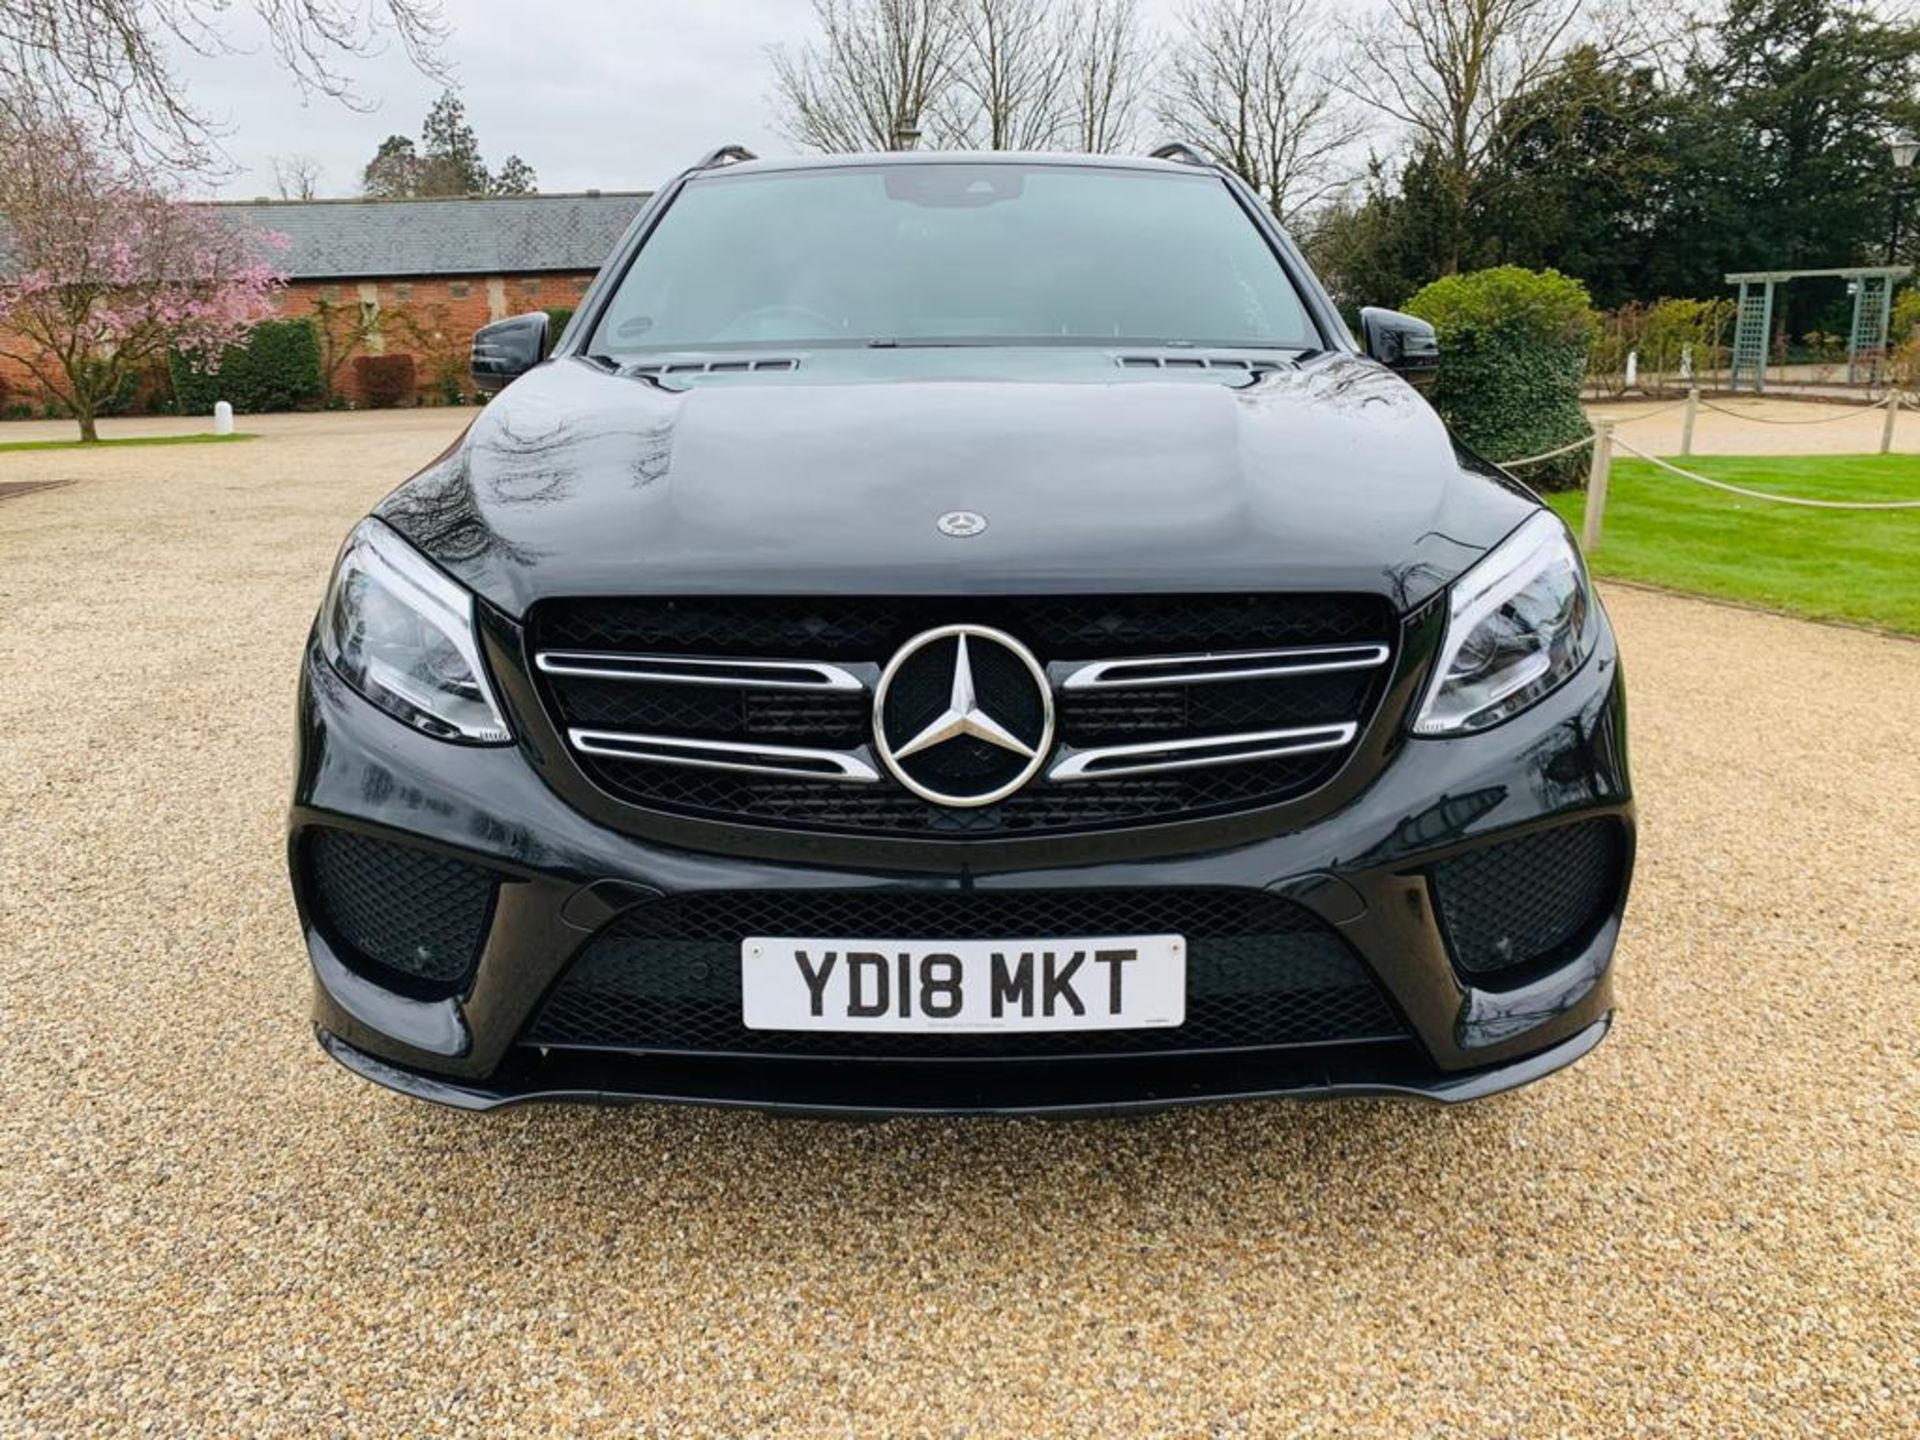 (RESERVE MET) Mercedes GLE 250d 4Matic AMG Night Edition 9G Tronic - 2018 18 Reg - Only 33K Miles - - Image 5 of 36